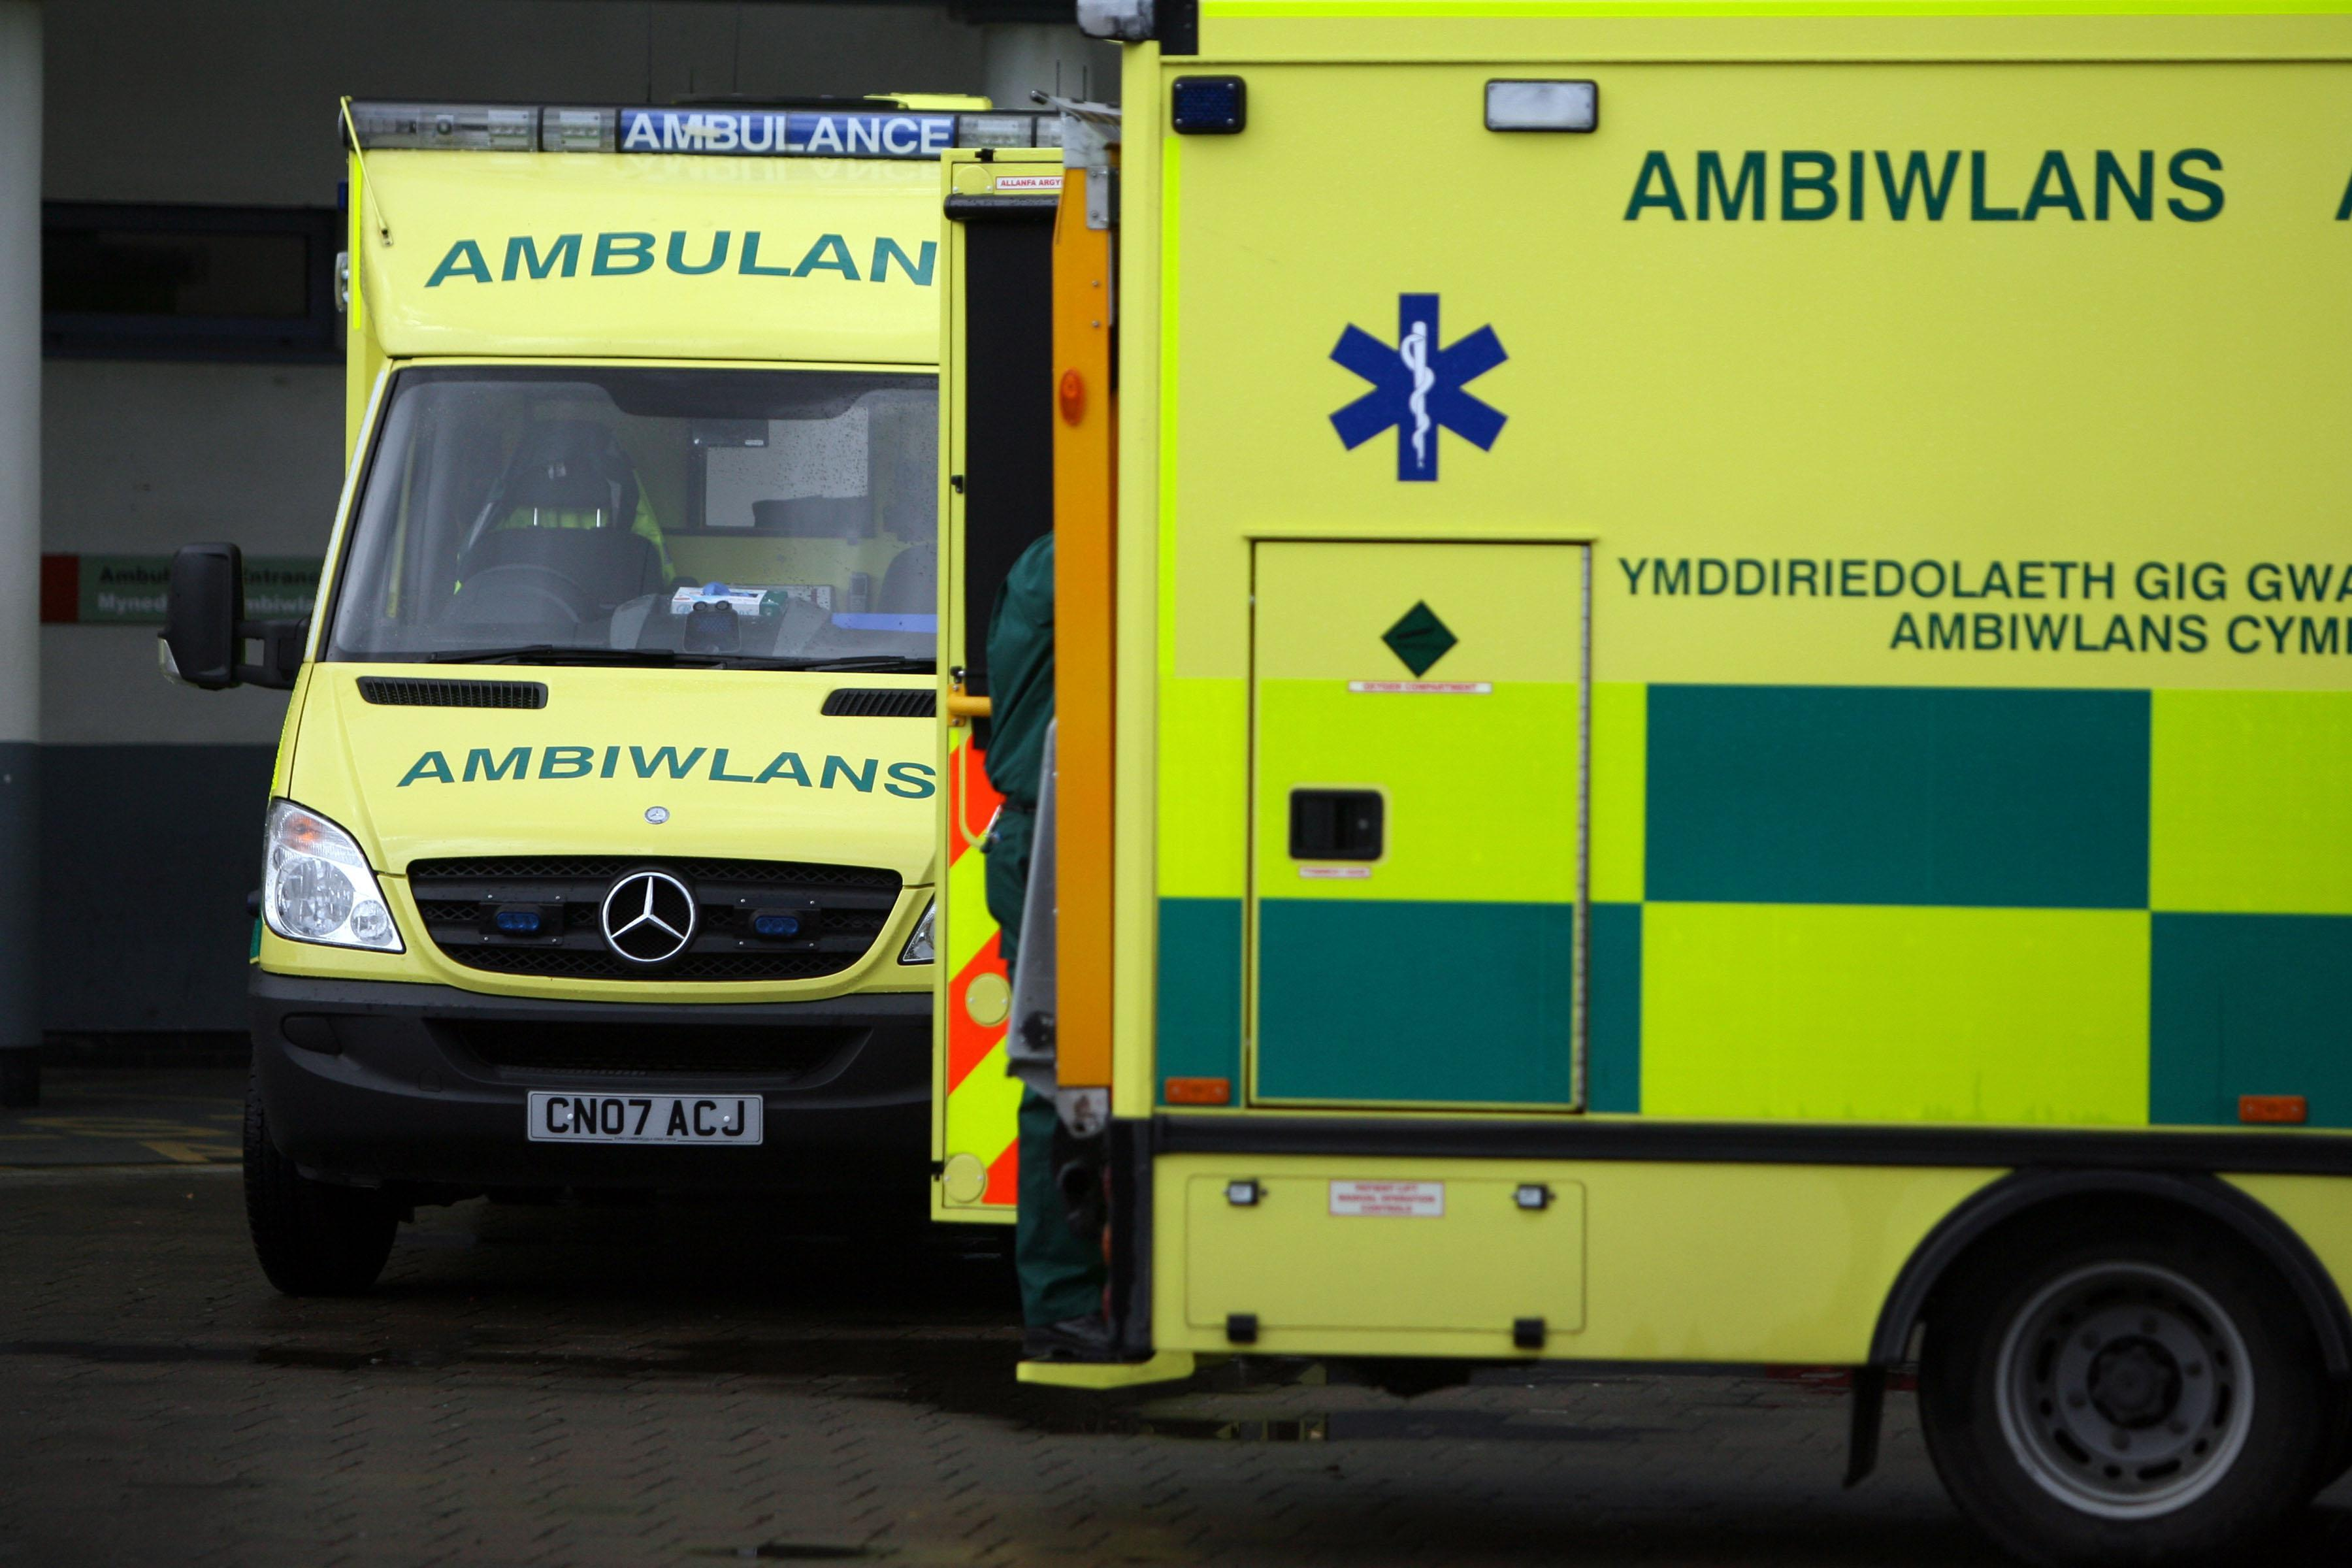 NHS IT outage branded 'major incident' as patients at some hospitals warned 'don't go to A&E'